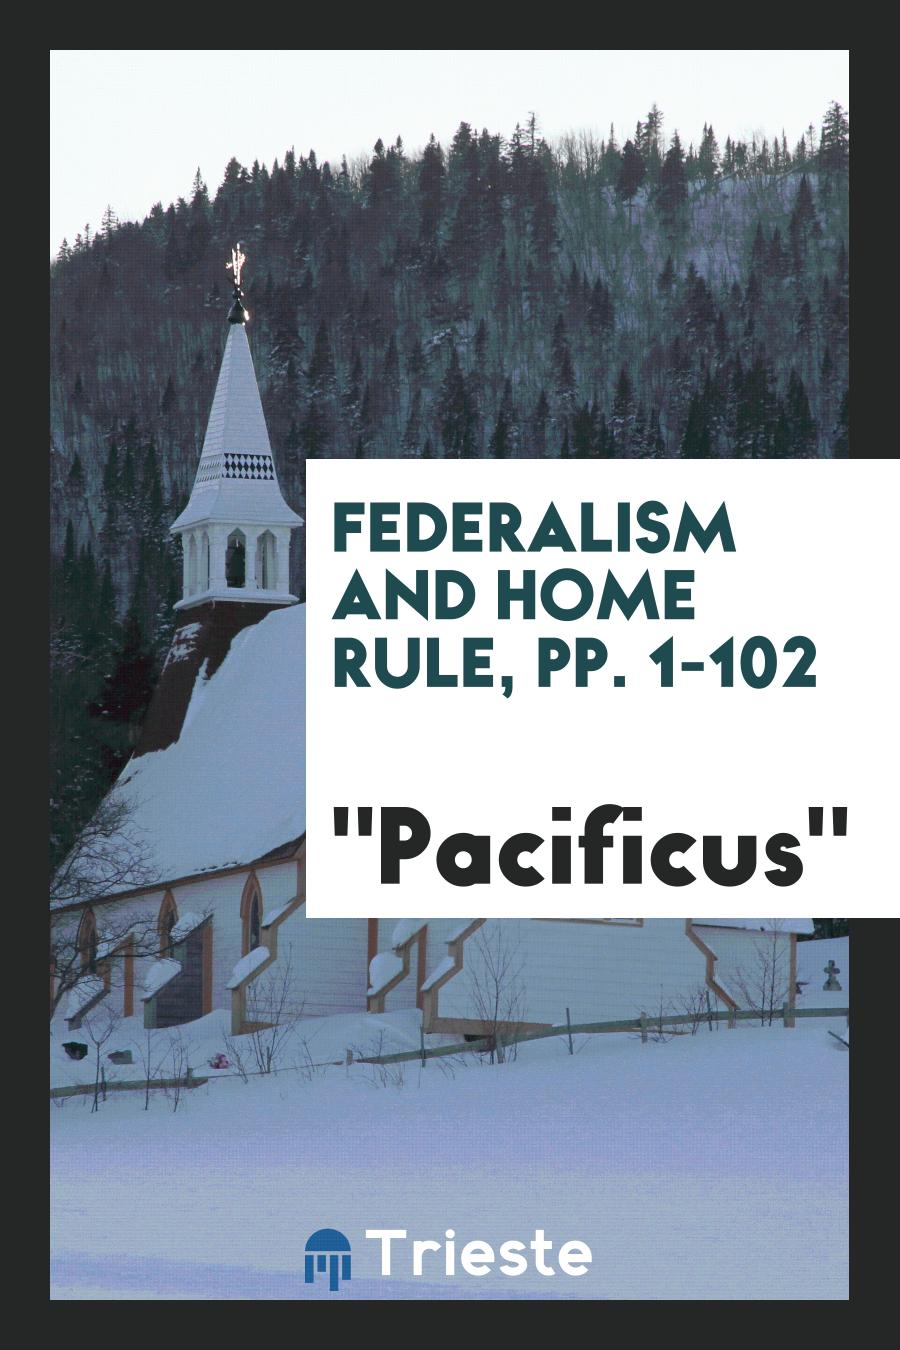 Federalism and Home Rule, pp. 1-102